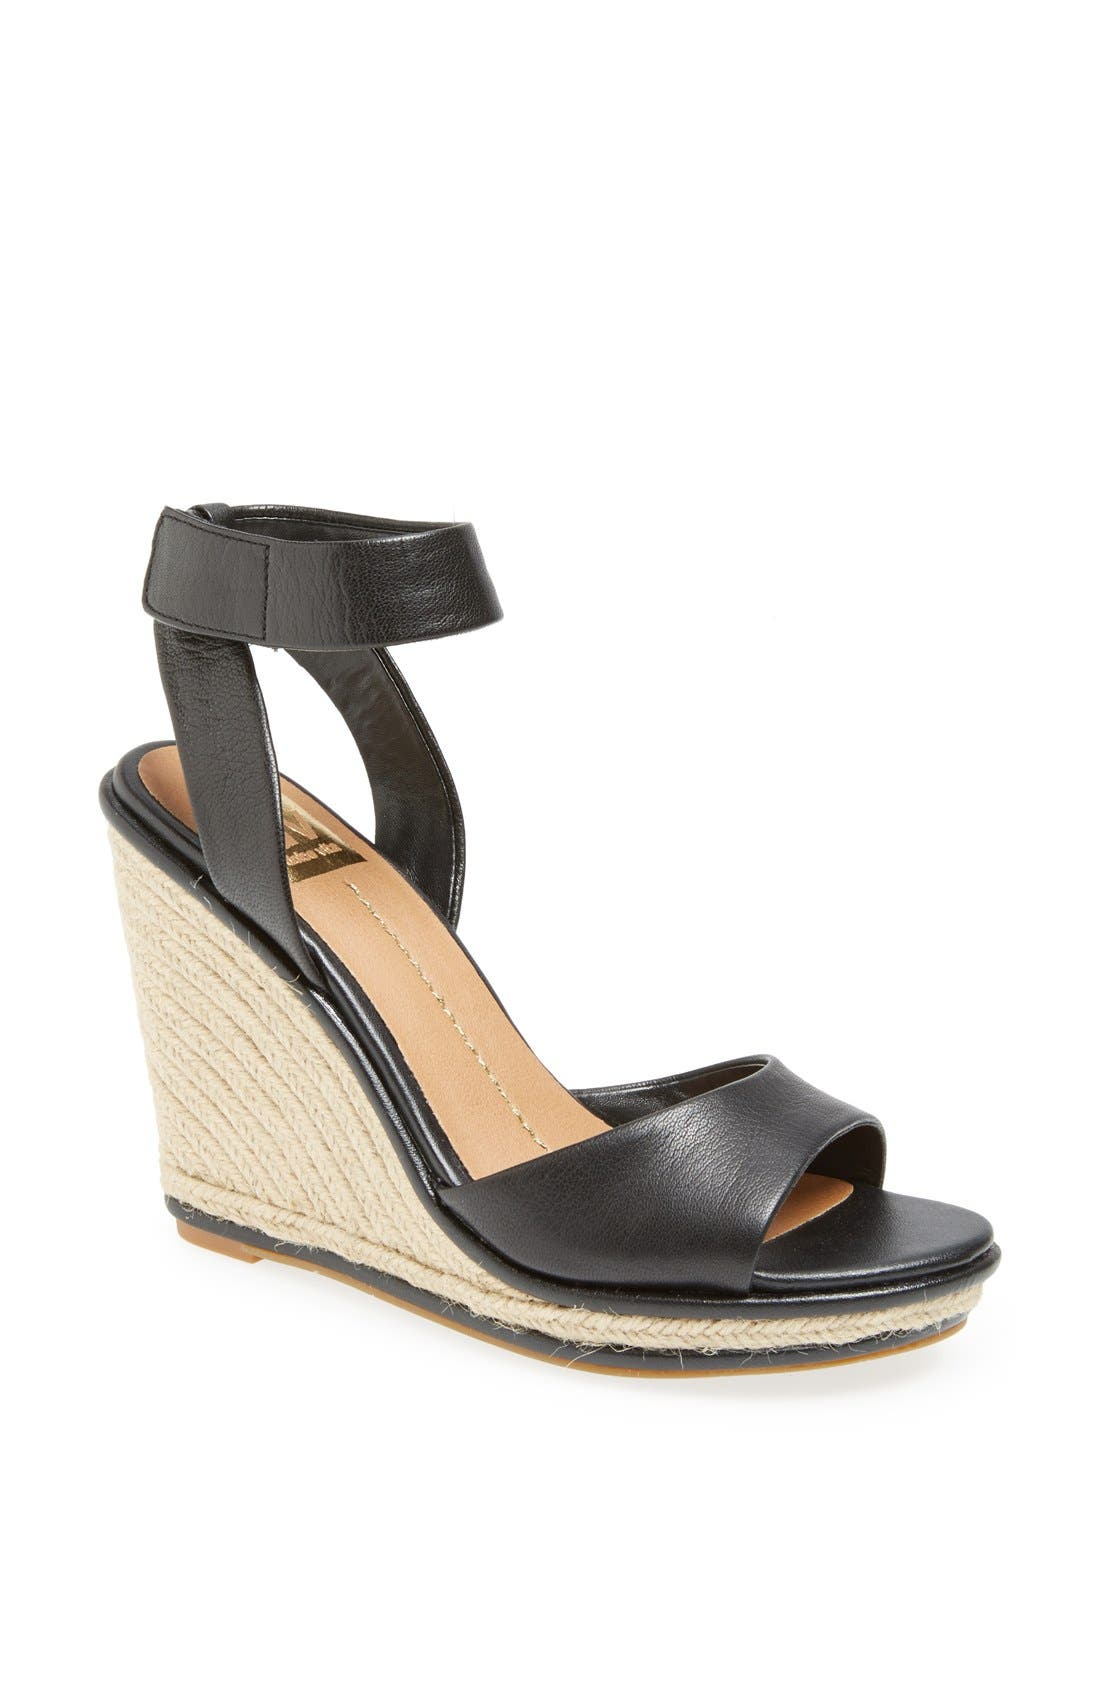 DV by Dolce Vita 'Tonya' Sandal,                         Main,                         color, 001